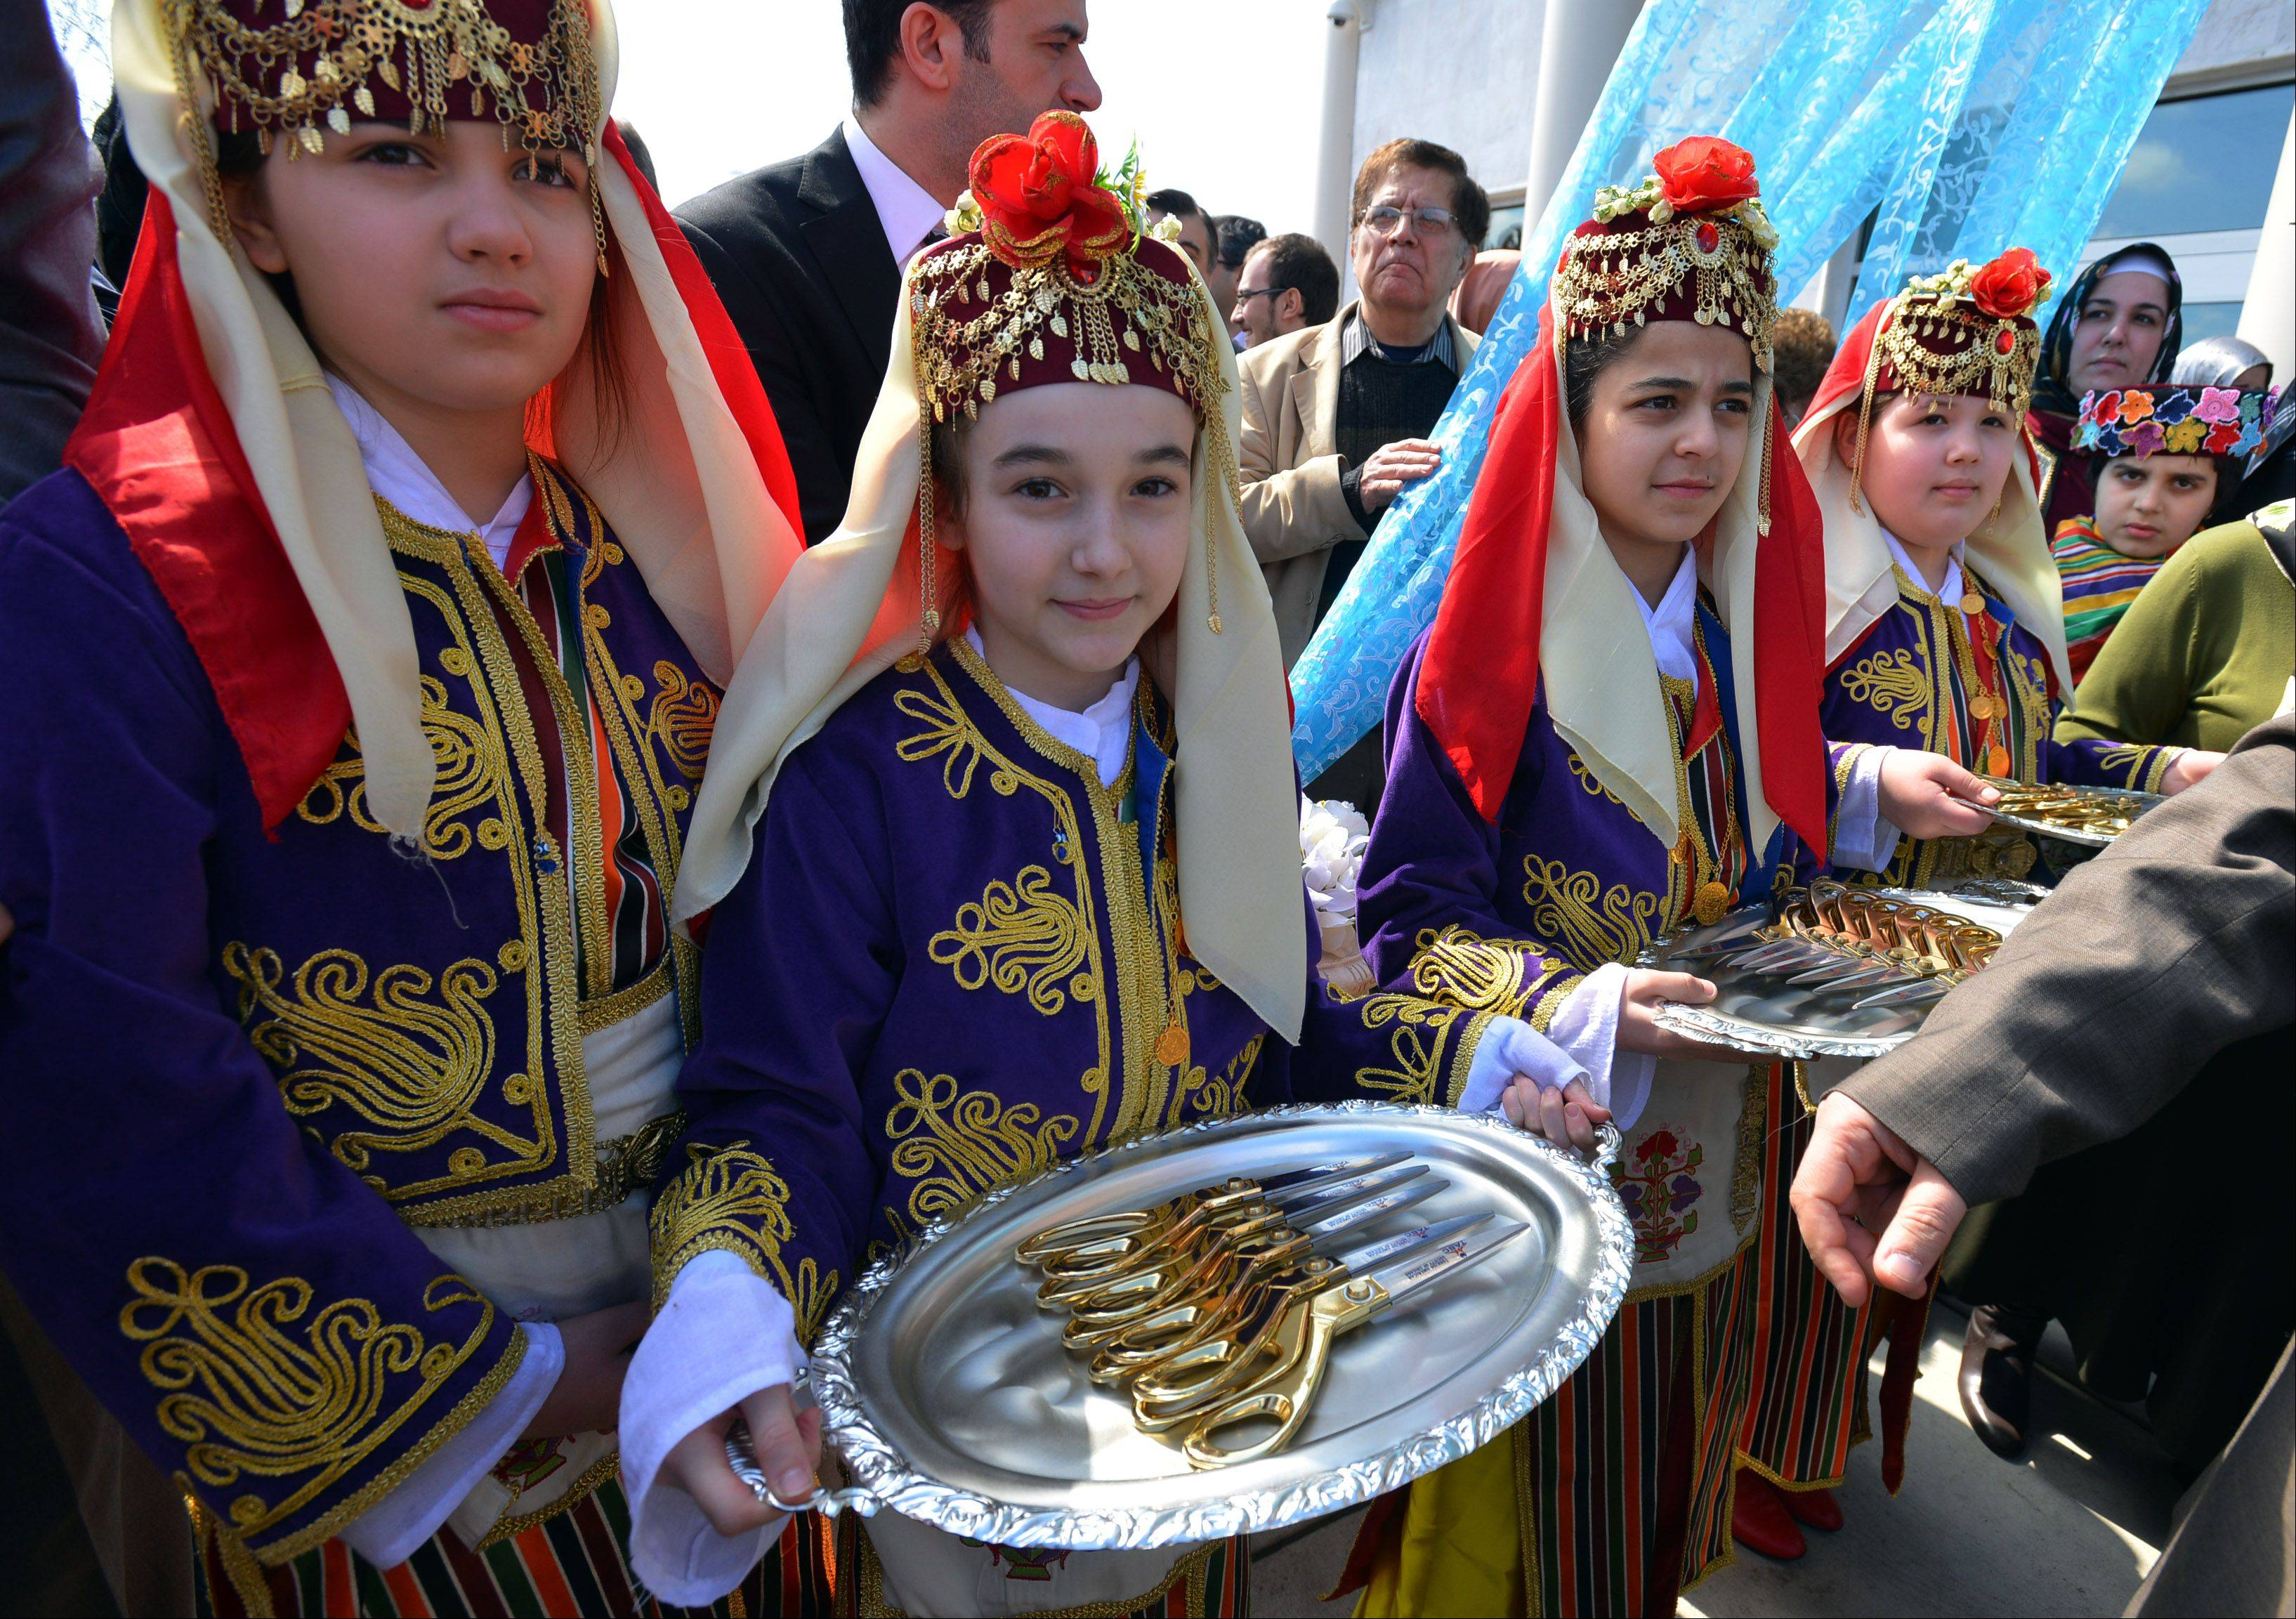 Turkish girls dole out scissors just before the ribbon-cutting ceremony Saturday at the Turkish American Society of Chicago Cultural Center.